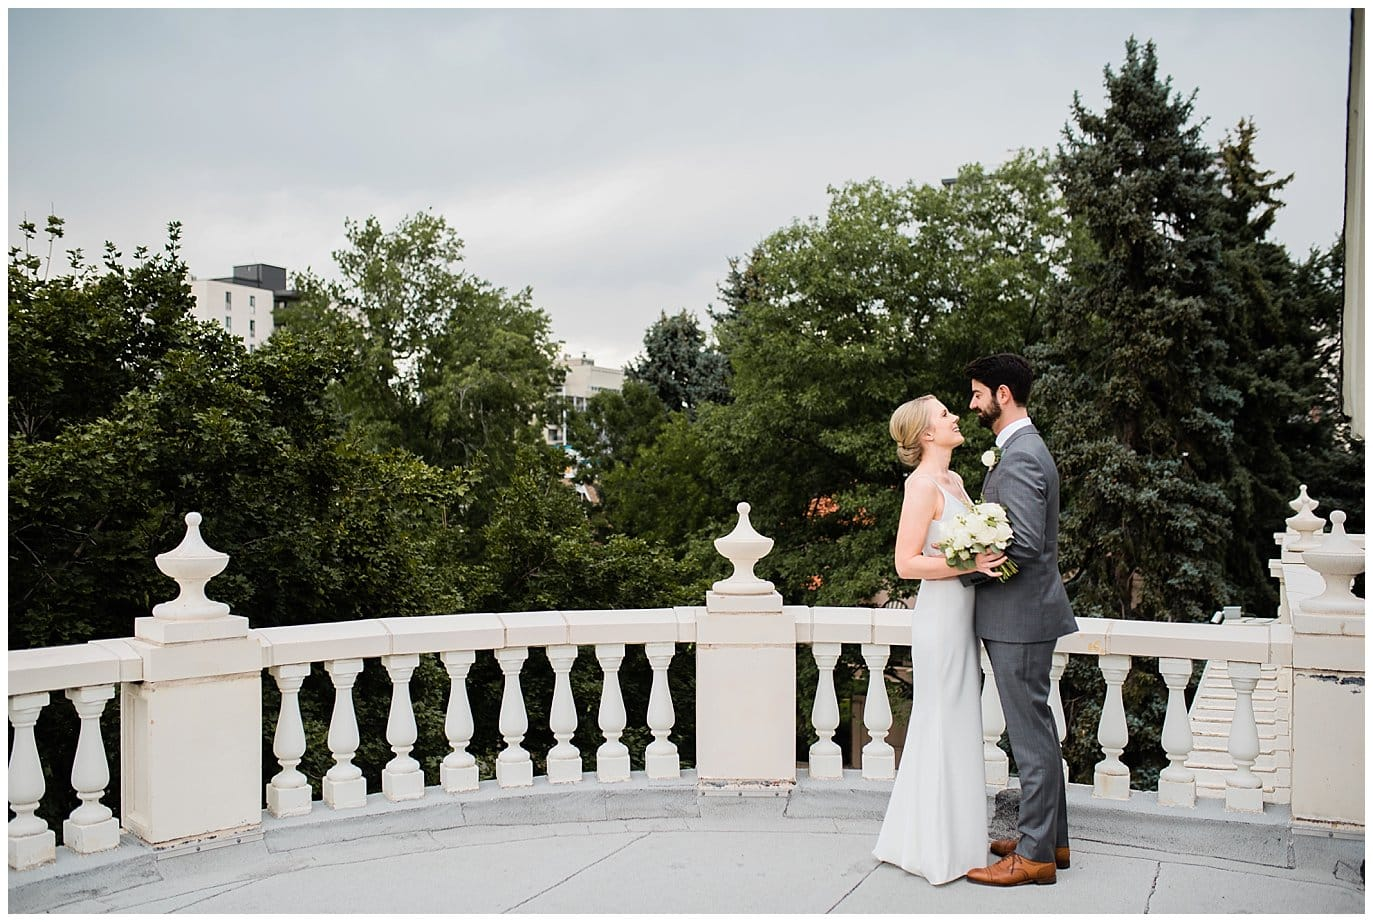 bride and groom romantic wedding portrait at grant humphrey's mansion by Colorado Gay wedding photographer jennie crate photographer